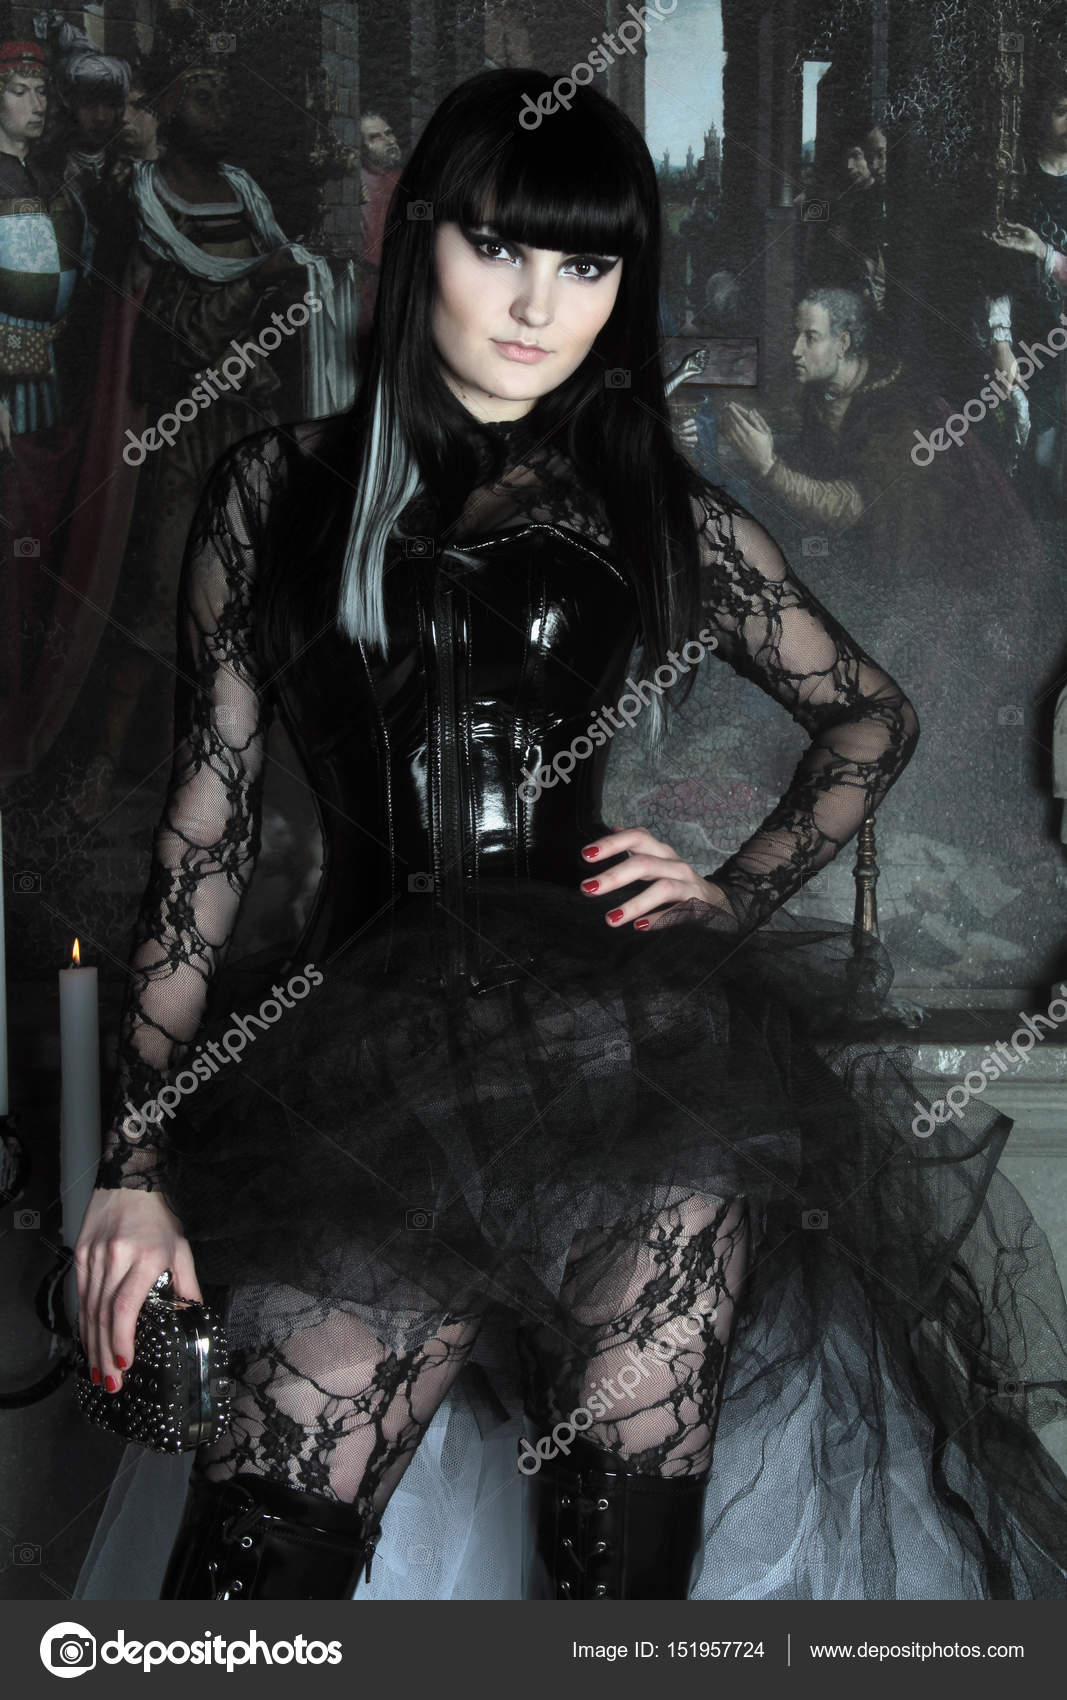 Variants are Young gothic girl bottle